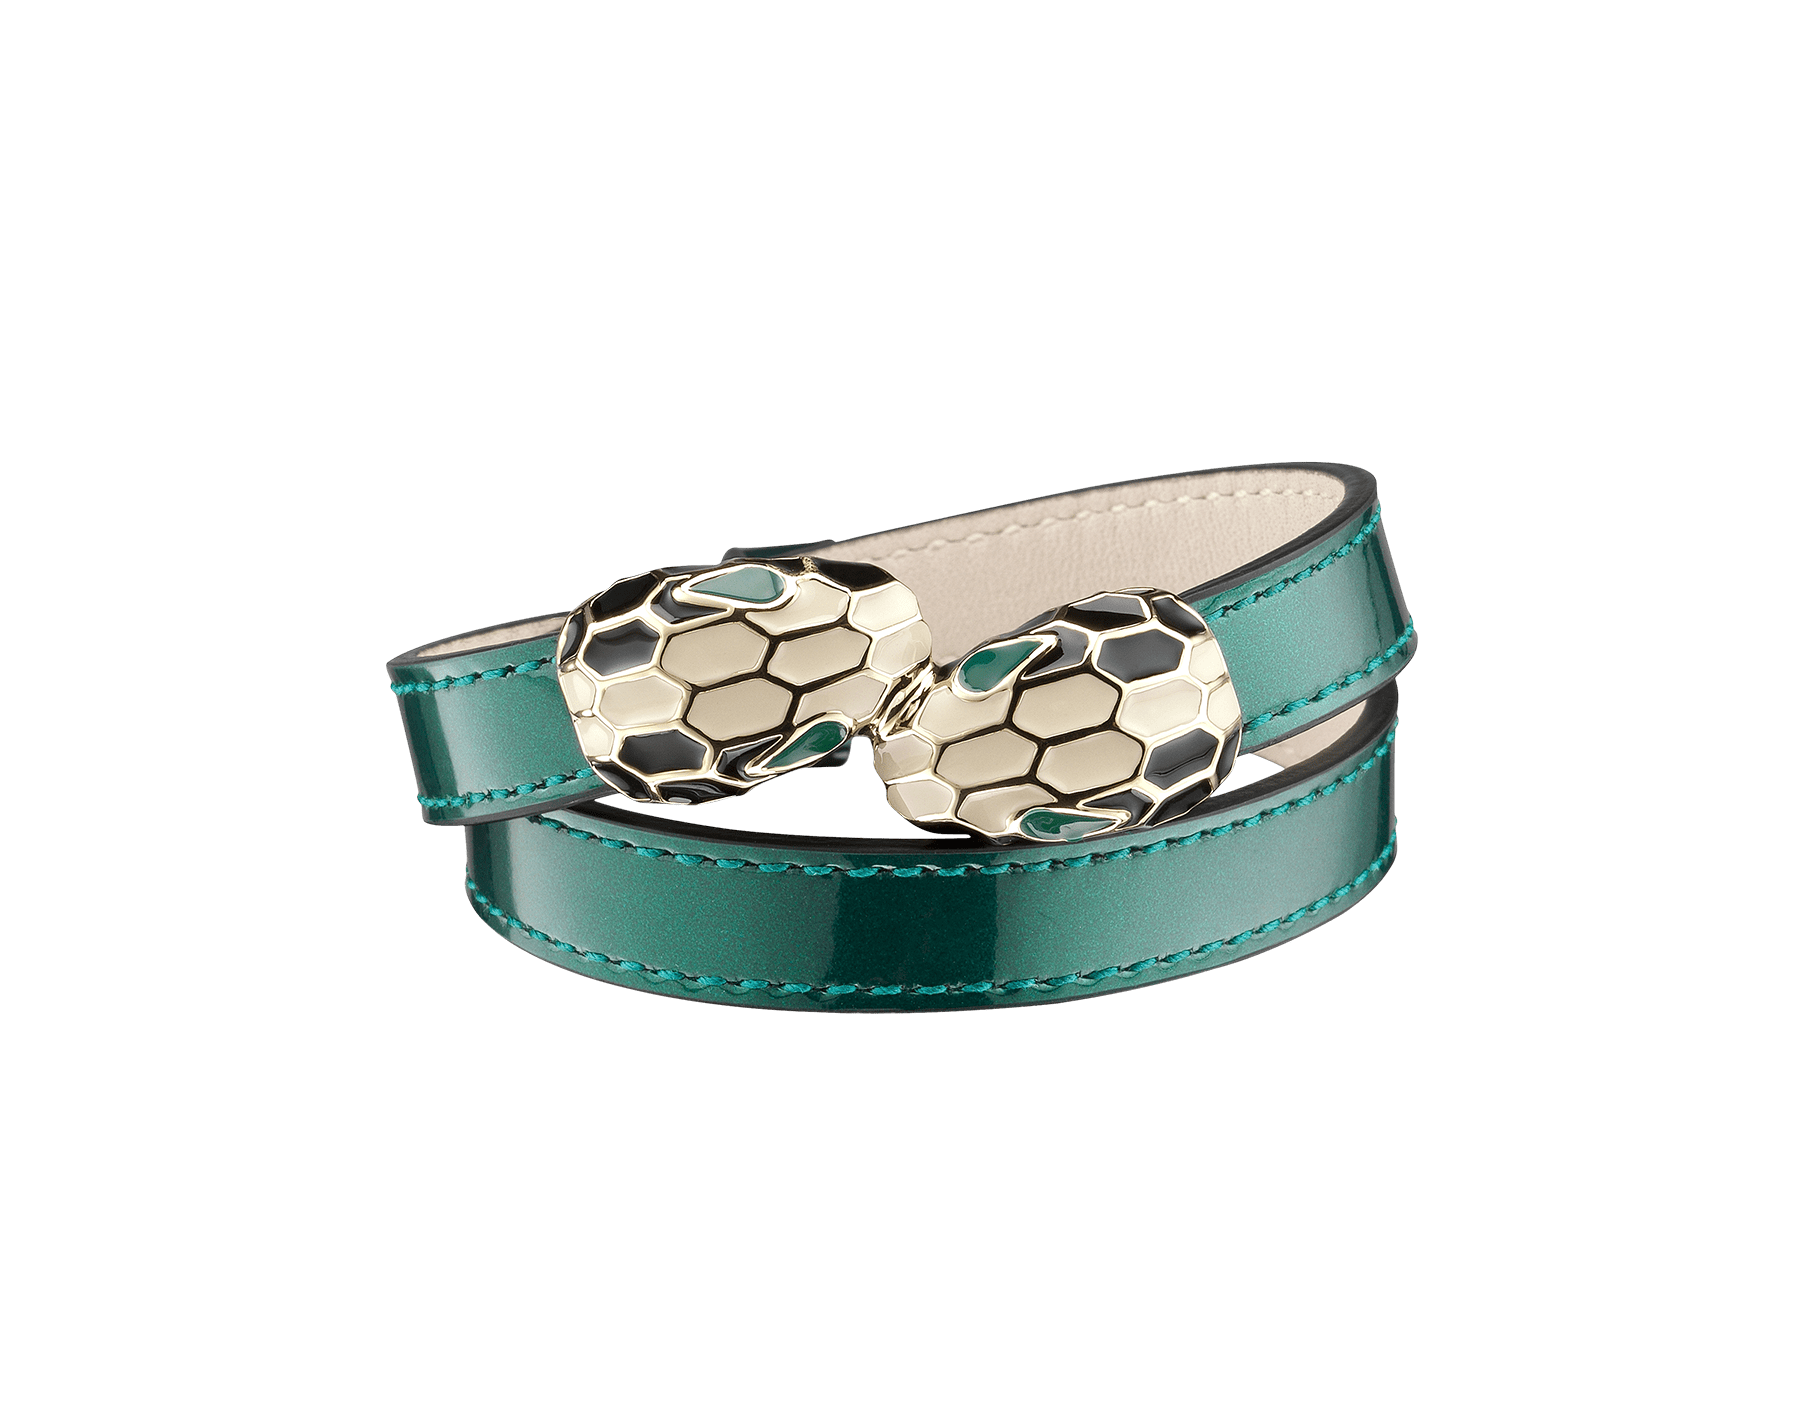 Multi-coiled bracelet in forest emerald brushed metallic calf leather. Brass light gold plated iconic contraire Serpenti heads in black and white enamel with green enamel eyes. MCSerp-BMCL-FE image 1